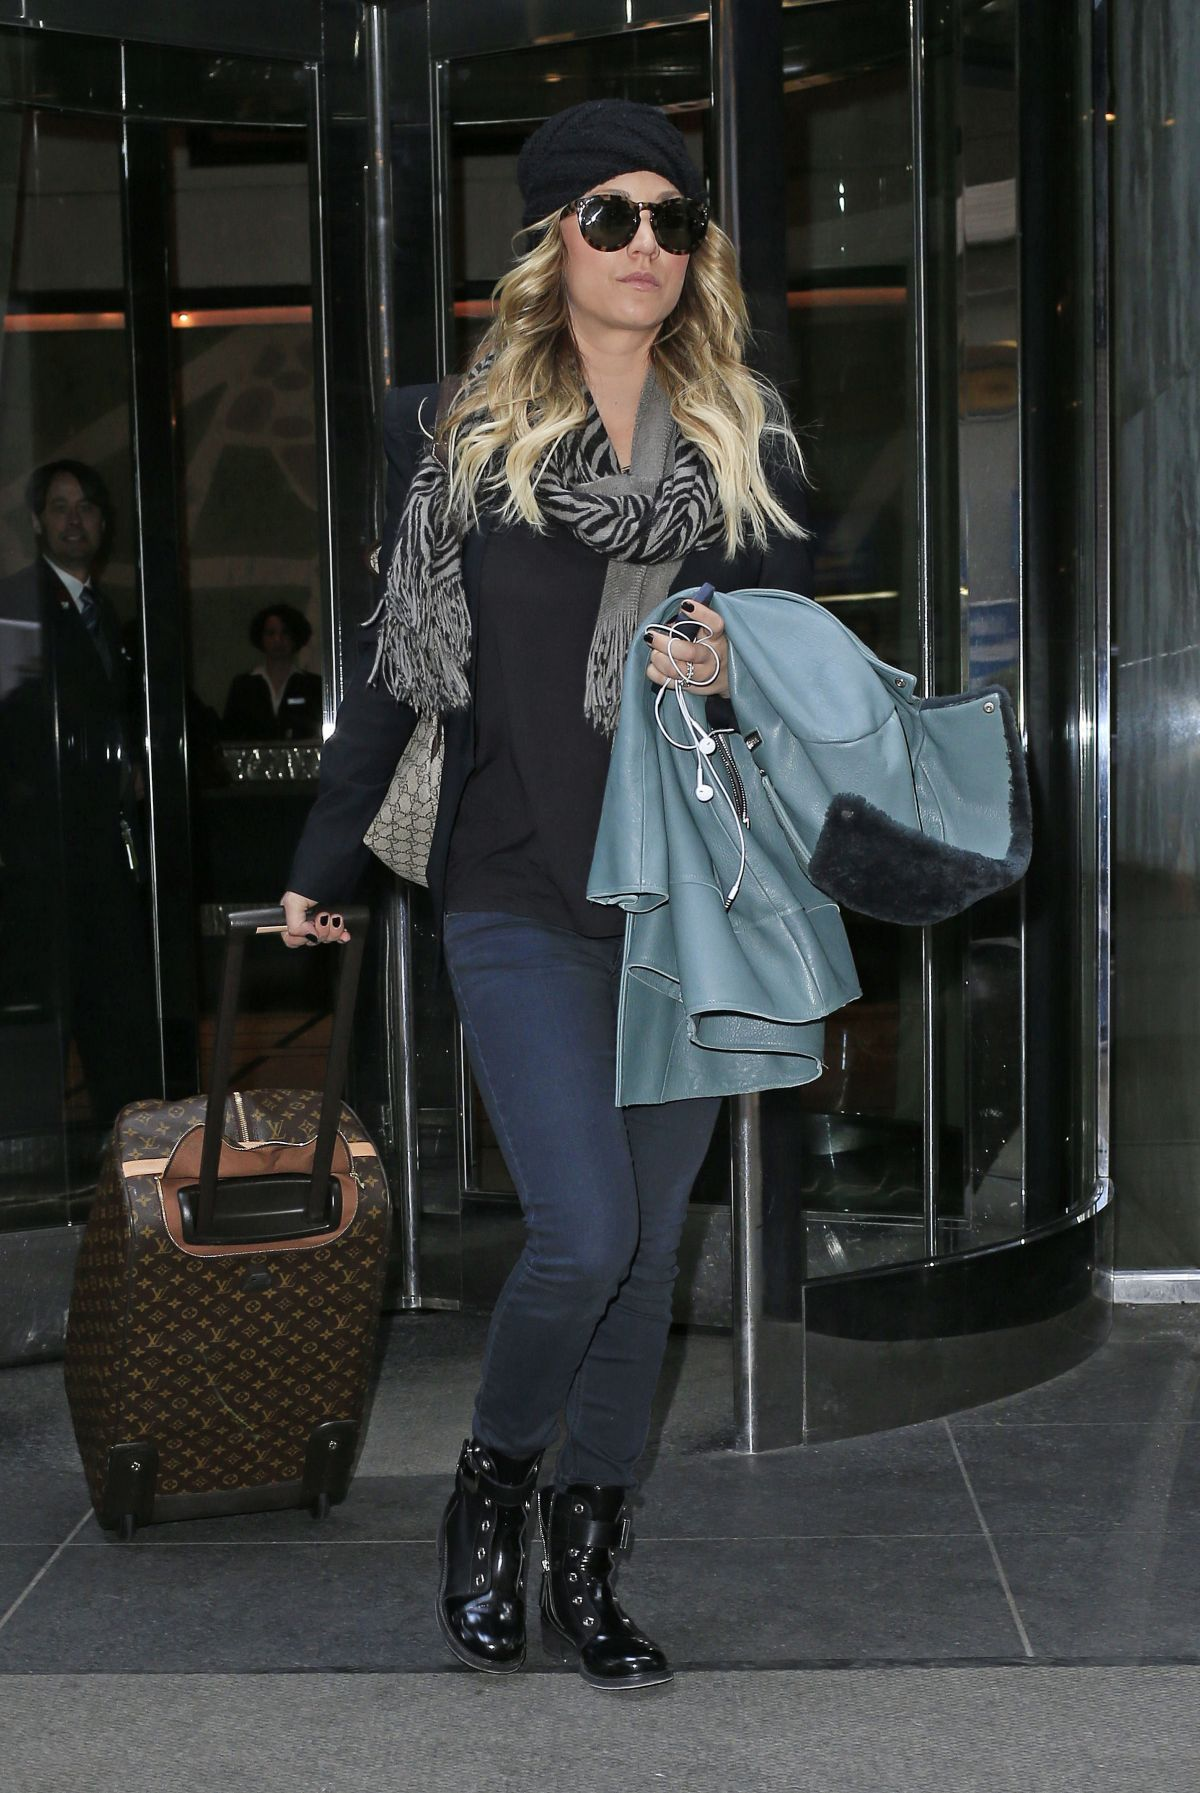 Kaley Cuoco Checking Out Of The London Hotel In New York City